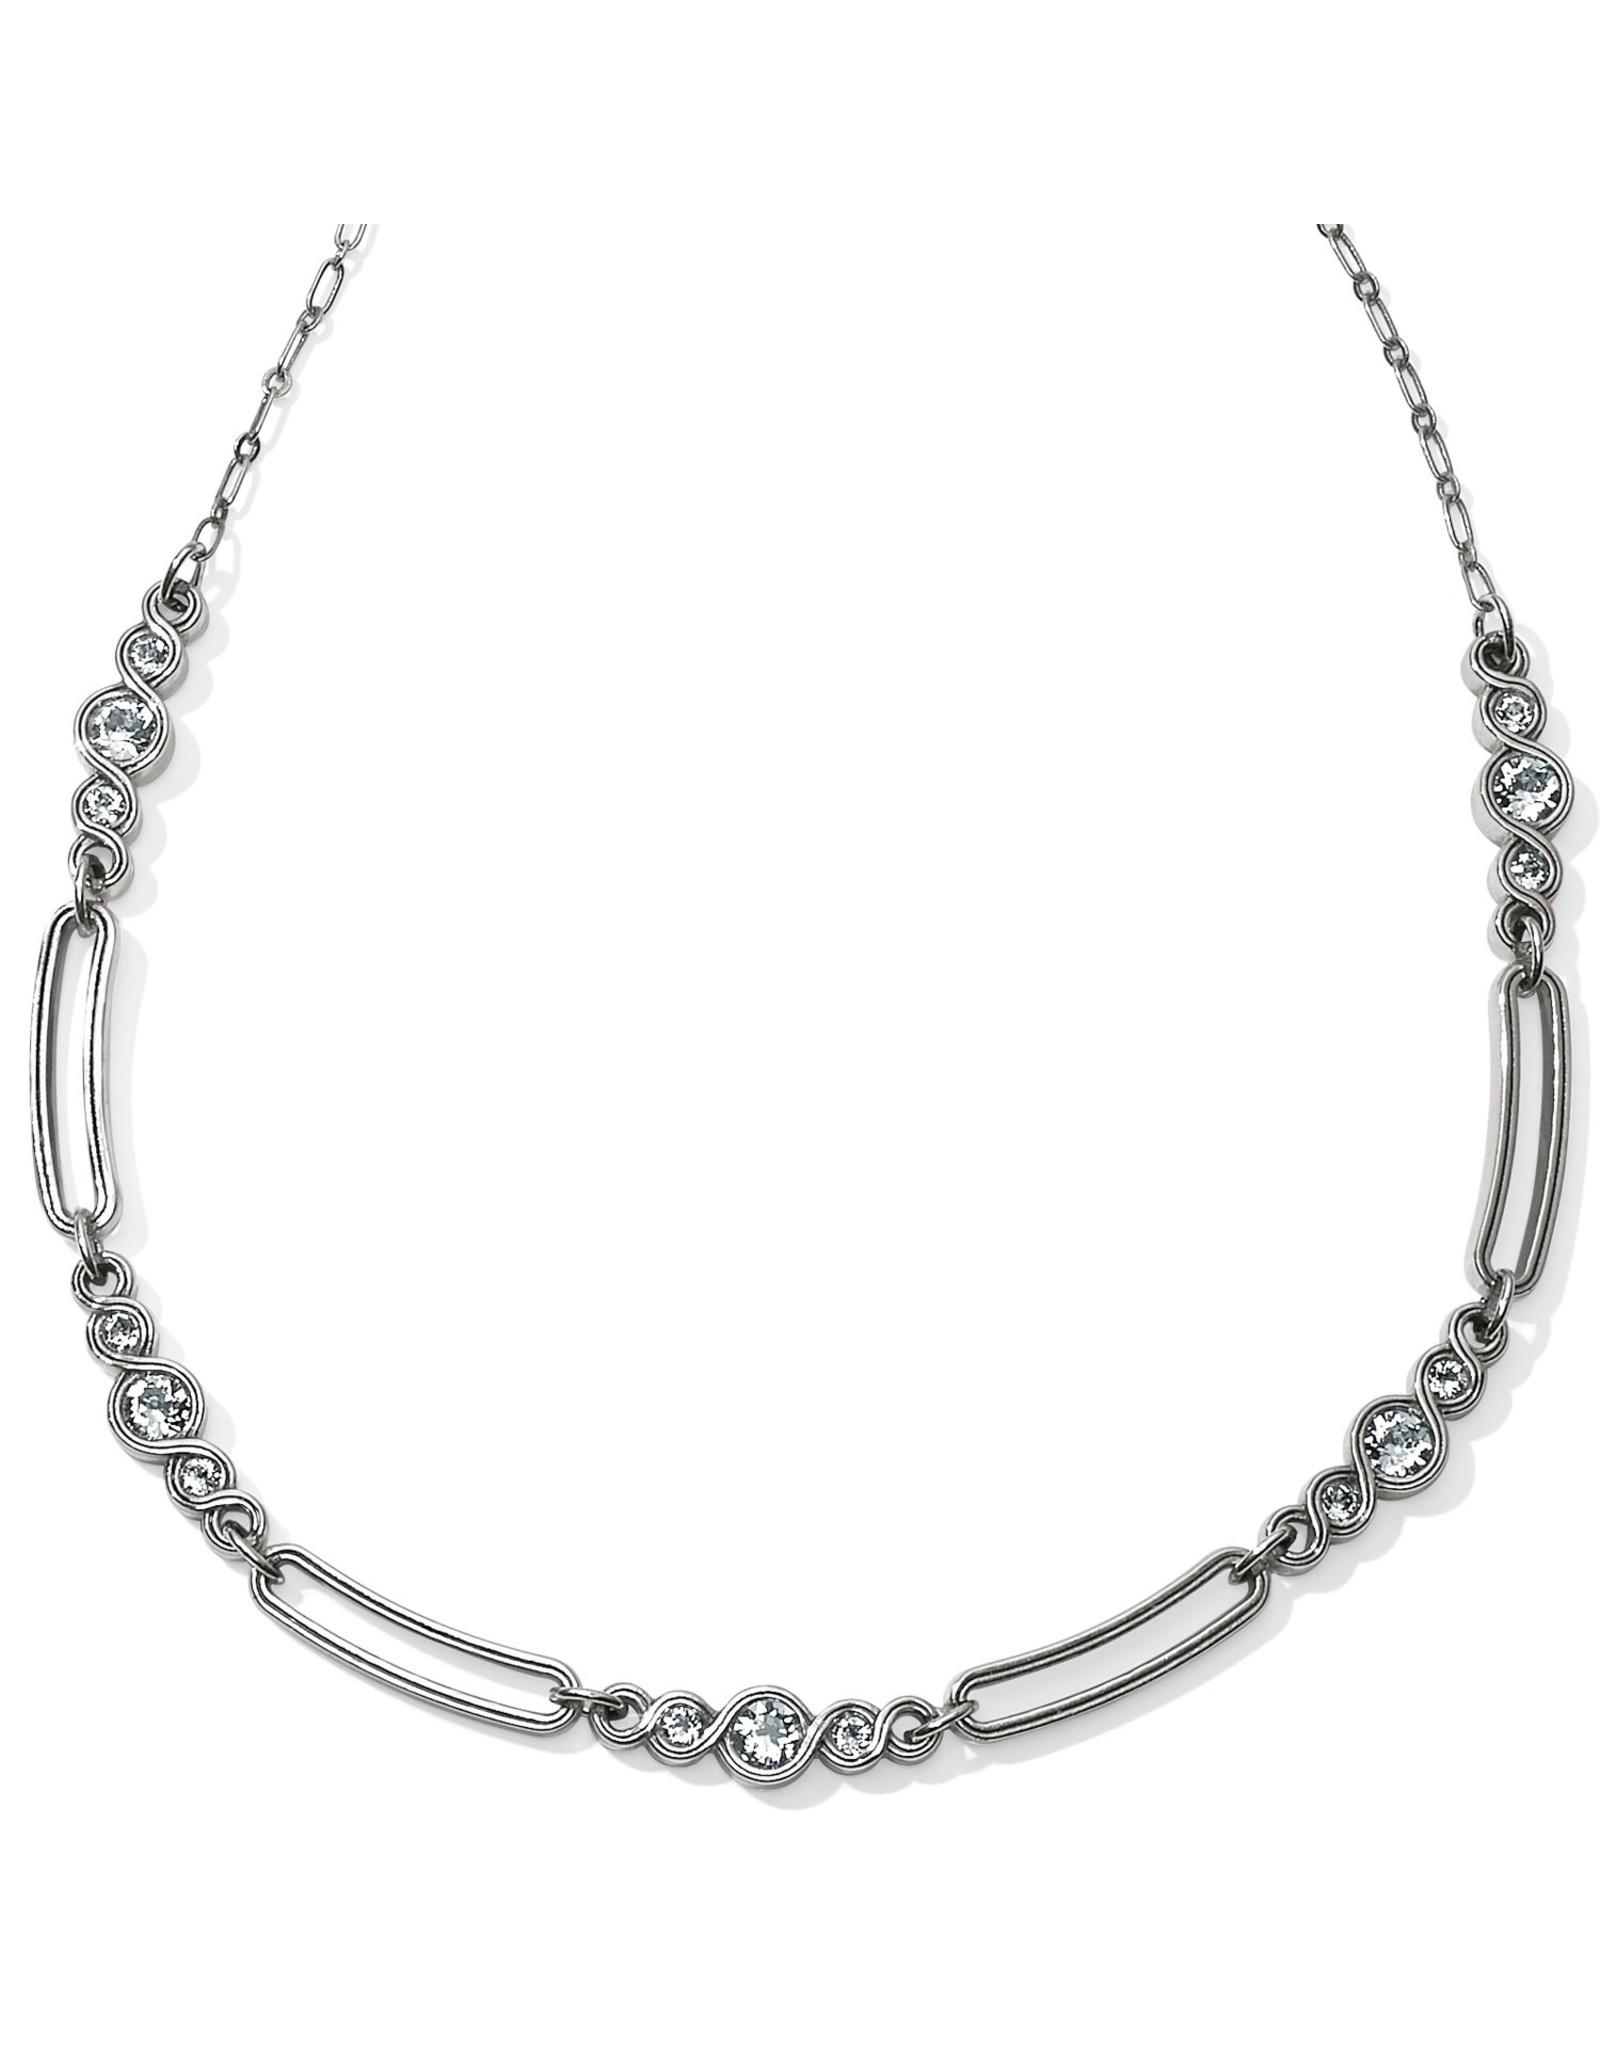 Brighton JL9561 Infinity Sparkle Link Collar Necklace